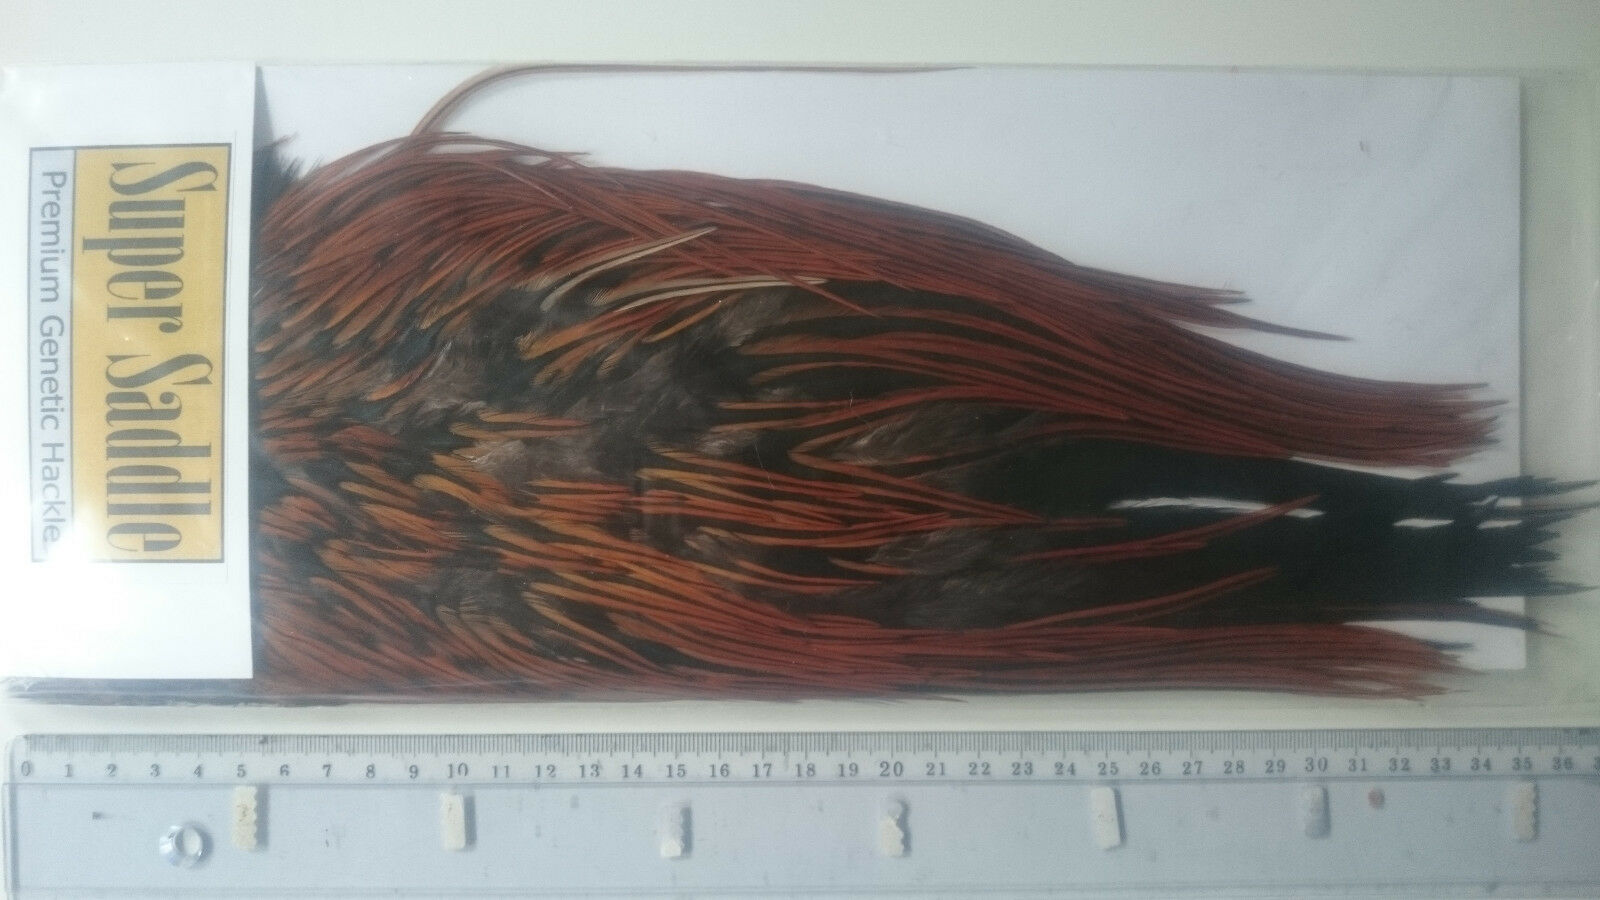 SUPER SADDLE saddle selle coq BADGER brown brown  fly tying montage mouche